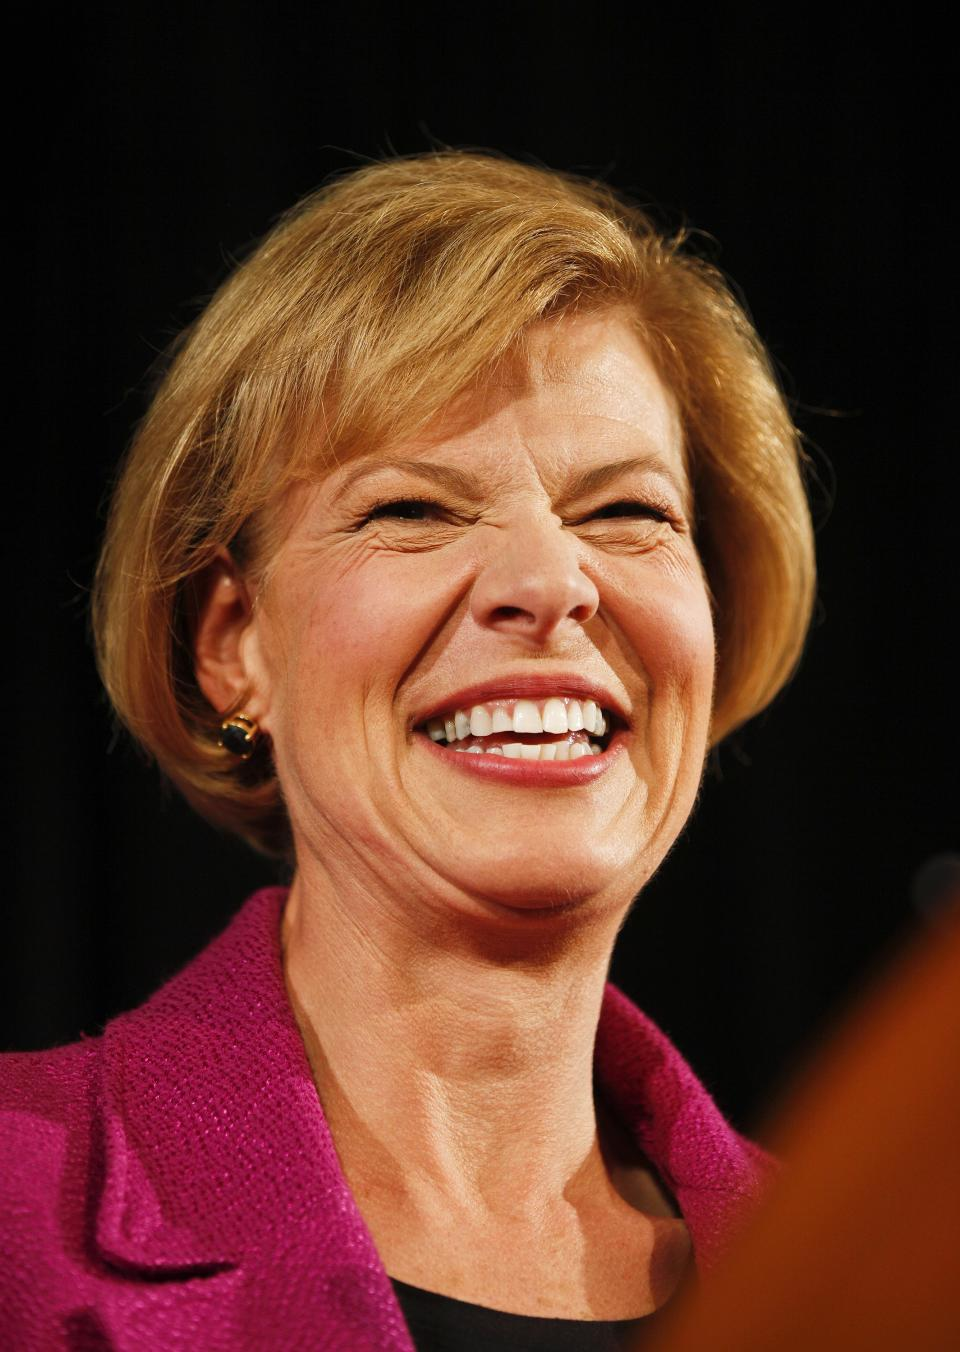 U.S. Rep. Tammy Baldwin, D-Wis, acknowledges supporters during her victory speech Tuesday, Nov. 6, 2012, in Madison, Wis. Baldwin beat former Wisconsin Gov. Tommy Thompson in the race for Wisconsin's U.S. Senate seat. (AP Photo/Andy Manis)